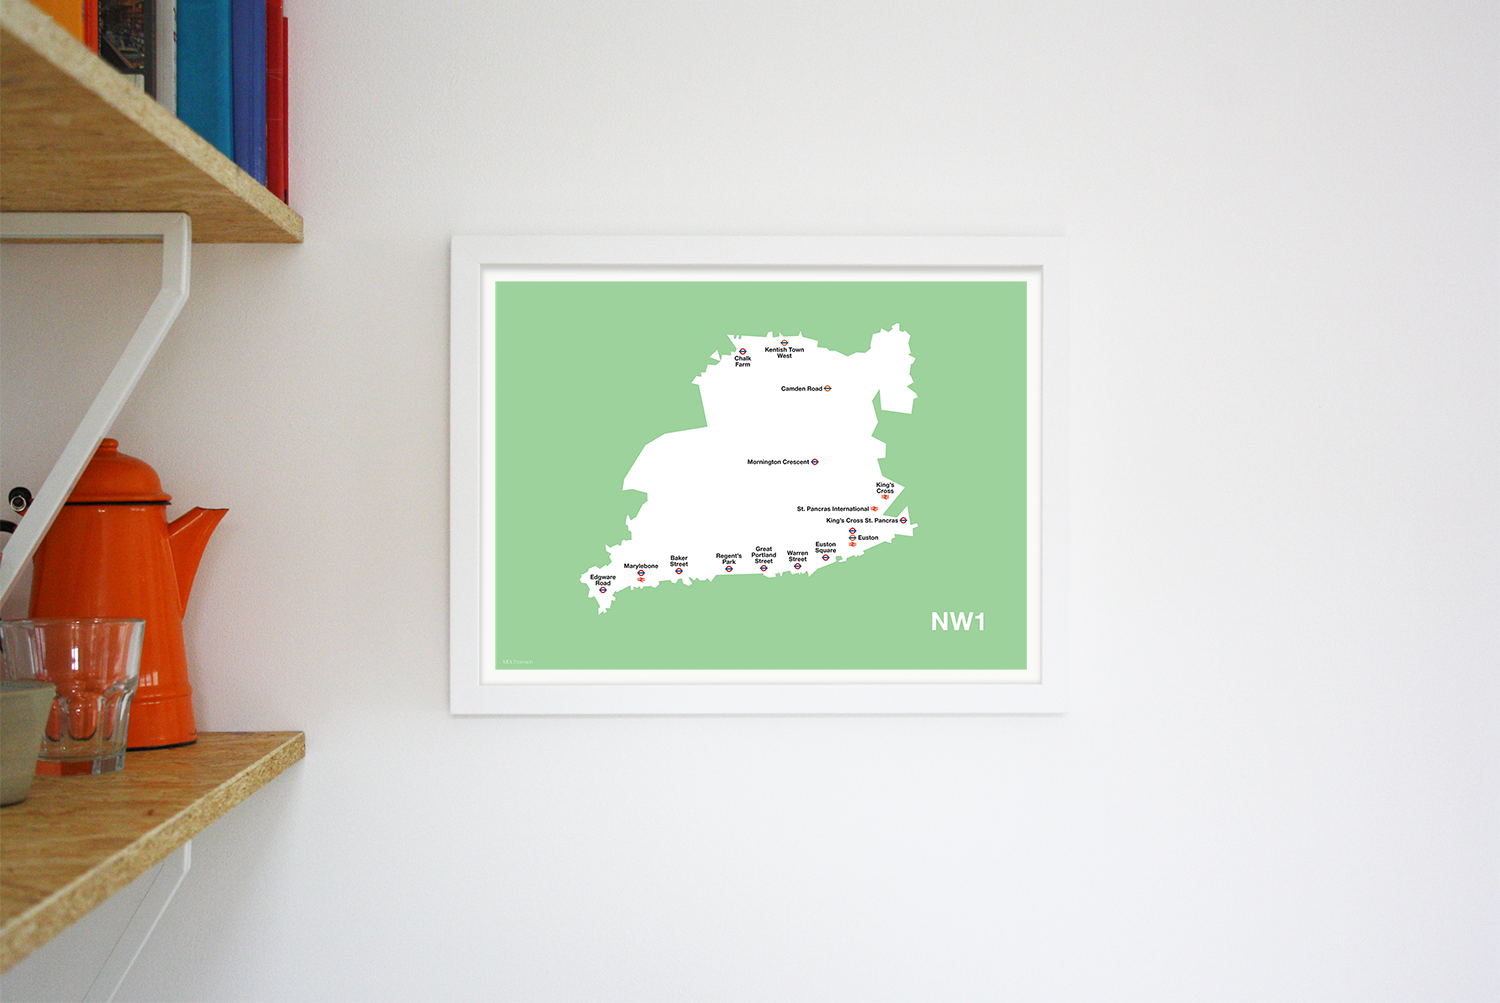 Place in Print MDLThomson NW1 Postcode Map Art Print Lifestyle